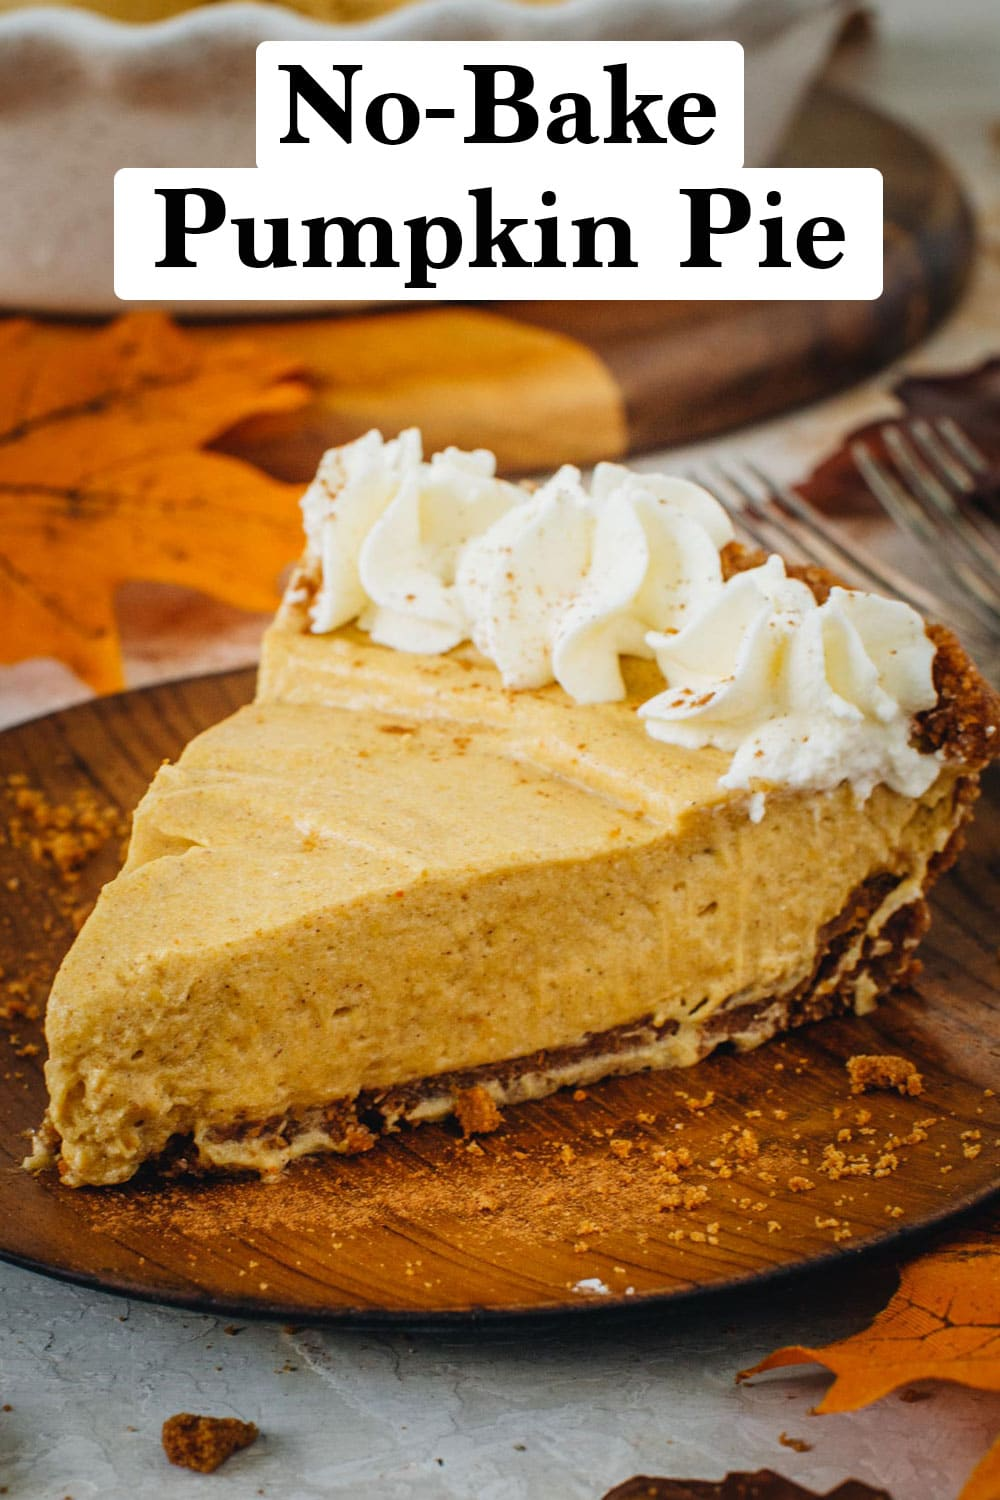 No-Bake Pumpkin Pie slice with whipped topping on a wooden plate.